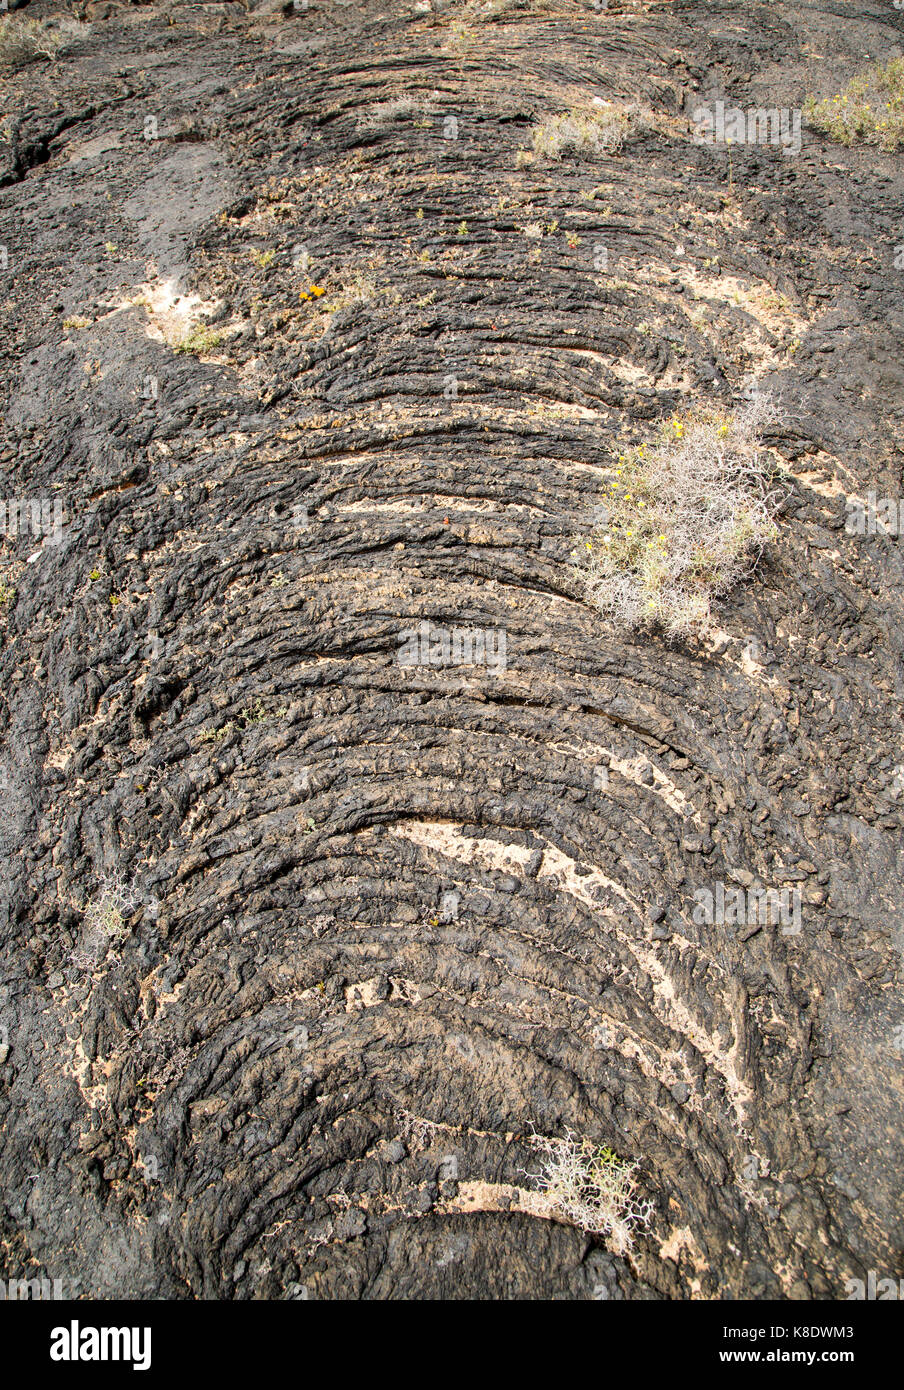 Solidified pahoehoe or ropey lava field, Tahiche, Lanzarote, Canary Islands, Spain - Stock Image